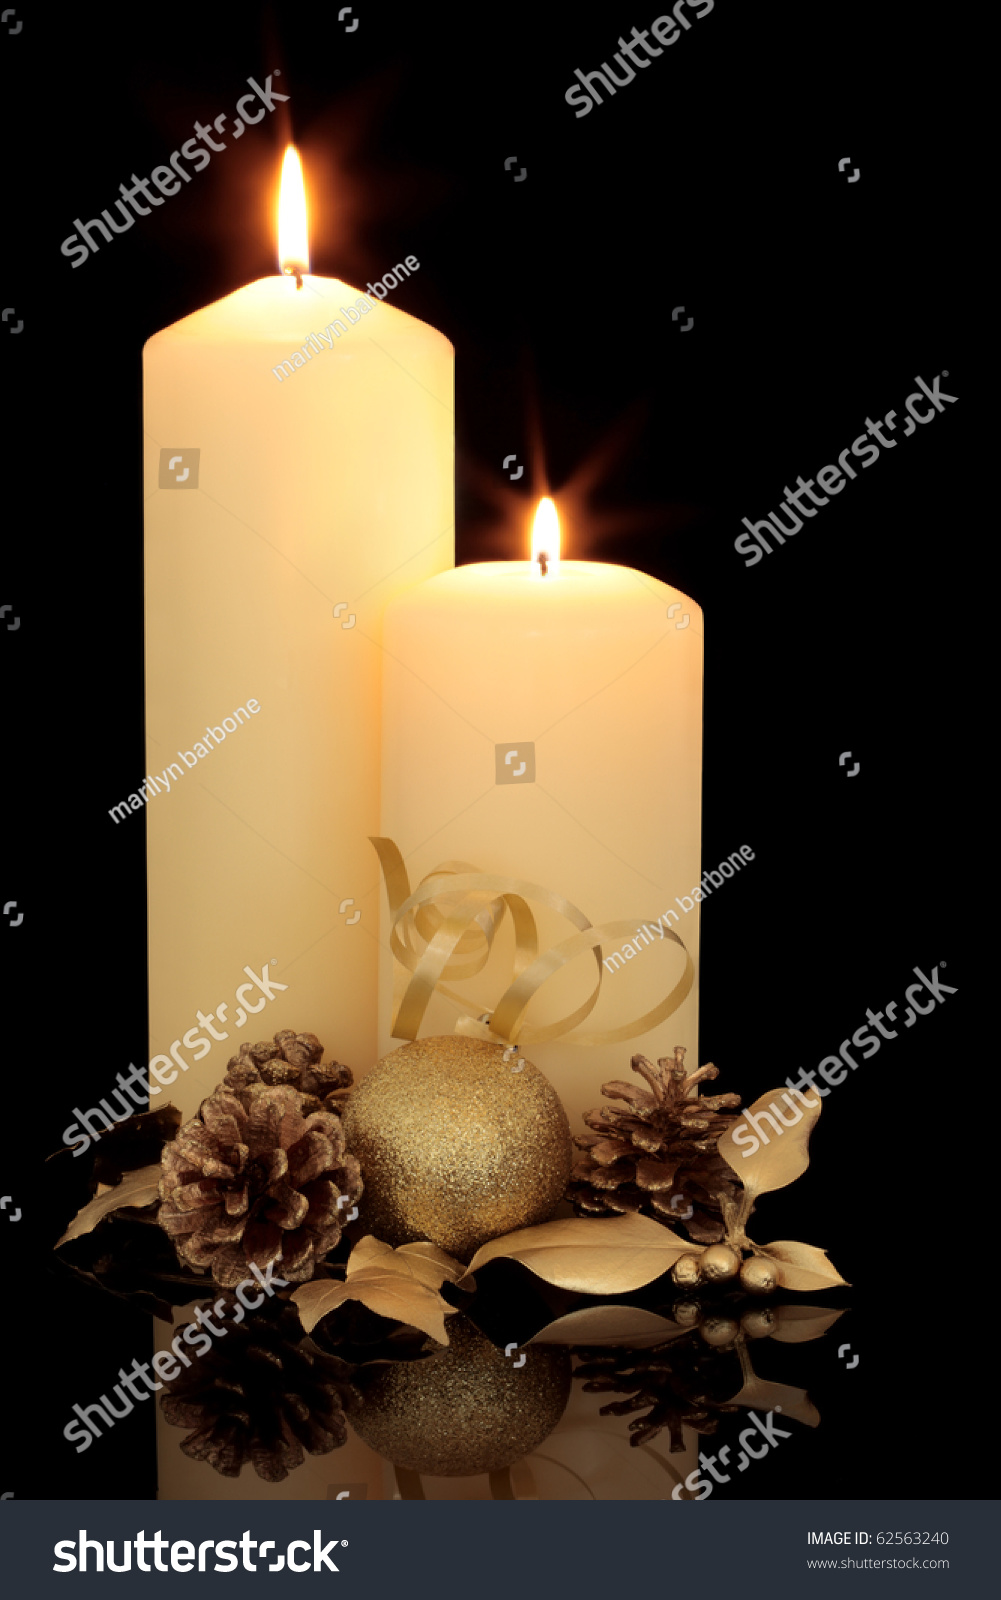 Pine Cone Candles Christmas Table Decoration Lit Candles Golden Stock Photo 62563240